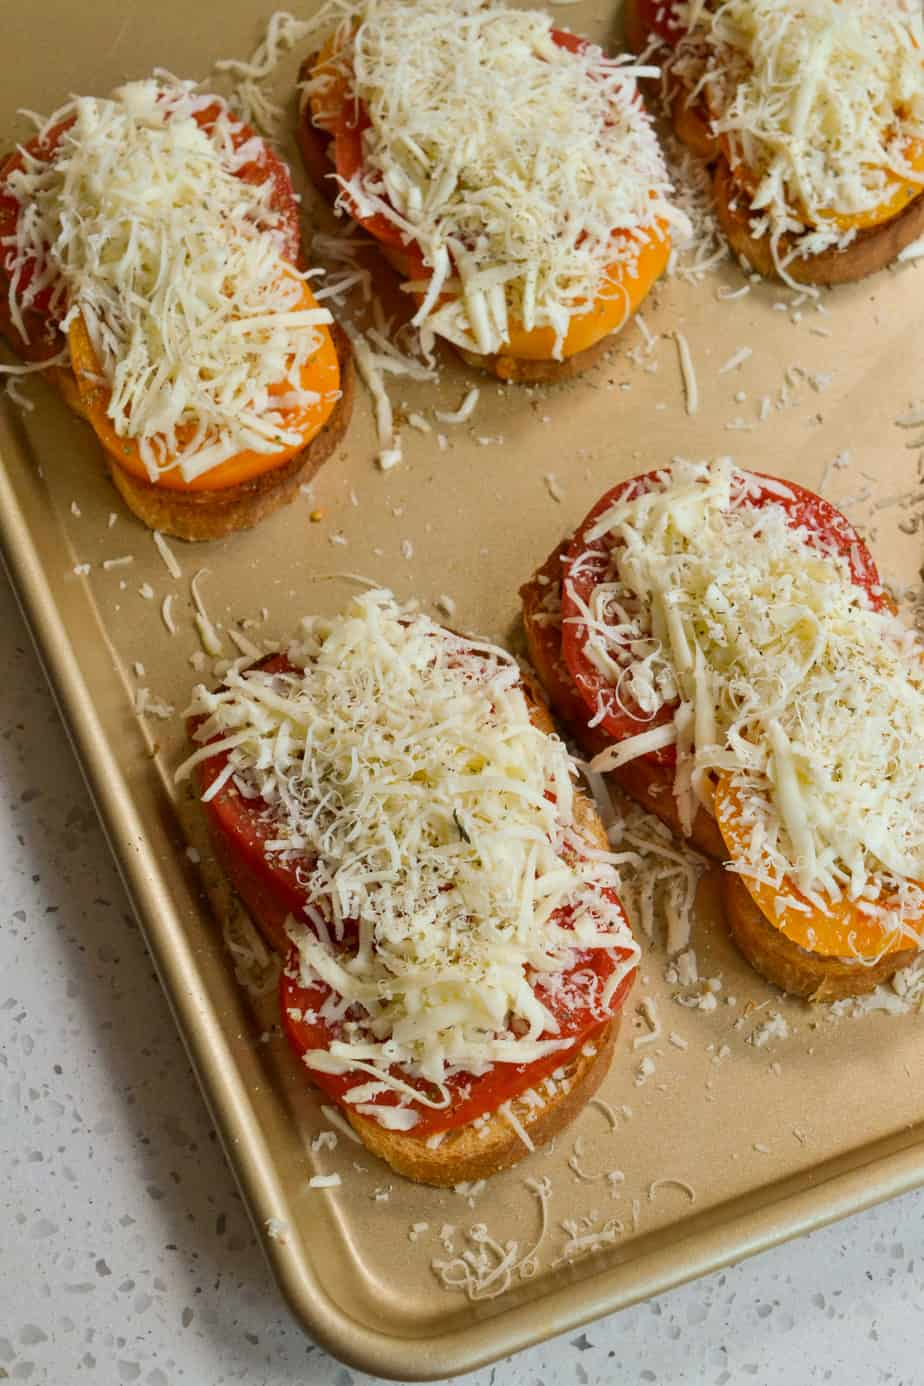 Top the tomato sandwiches with shredded mozzarella and parmesan.